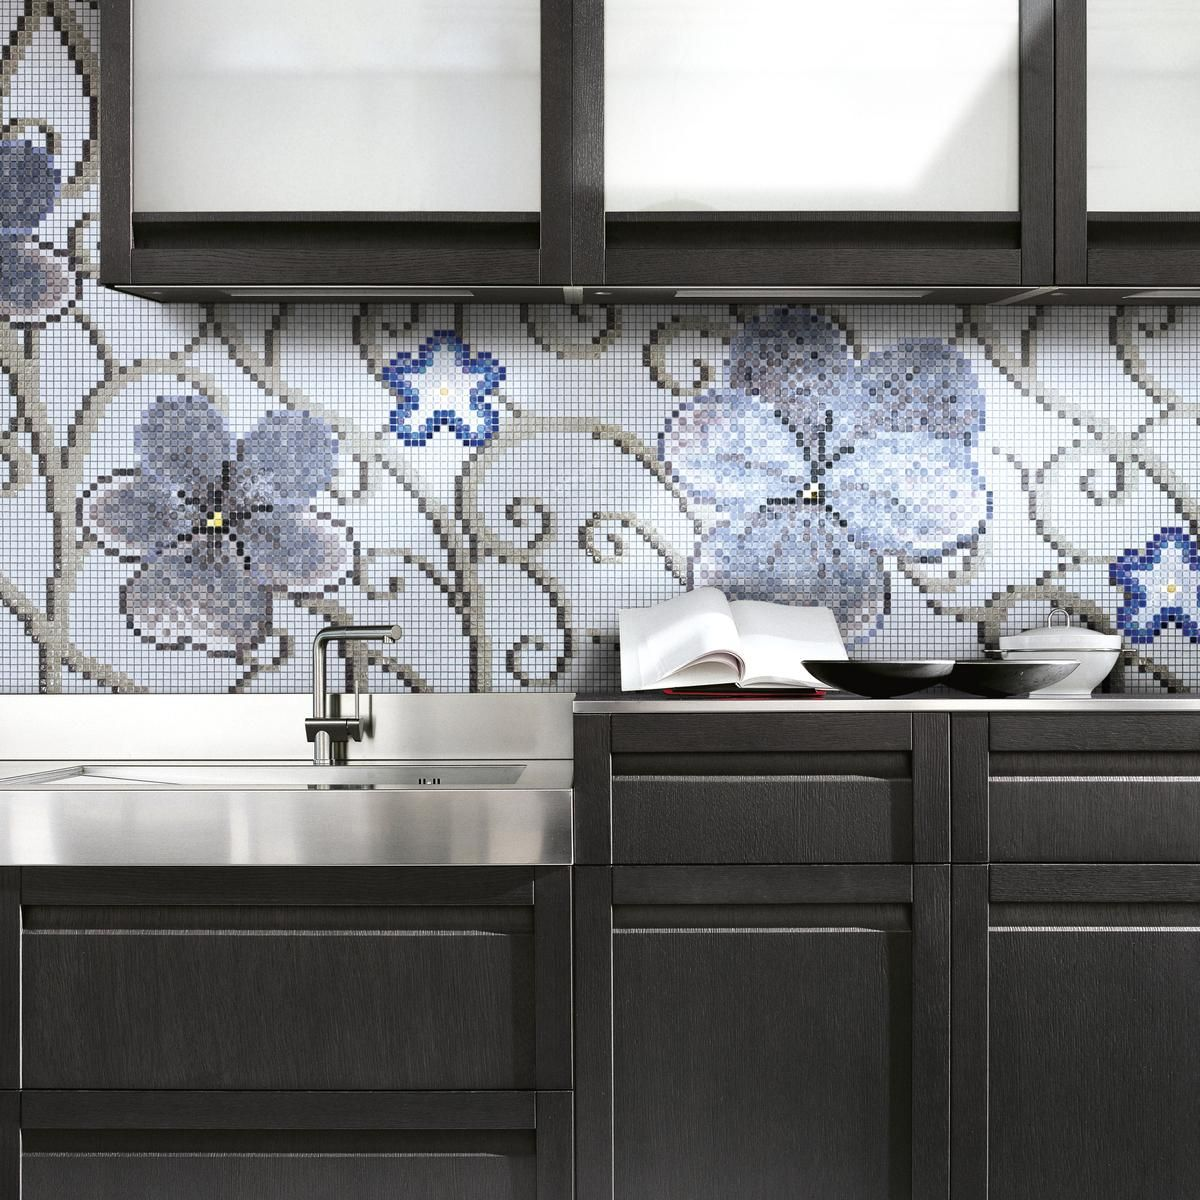 Welcome flora in your kitchen with mosaic tiles kitchen ideas welcome flora in your kitchen with mosaic tiles dailygadgetfo Image collections